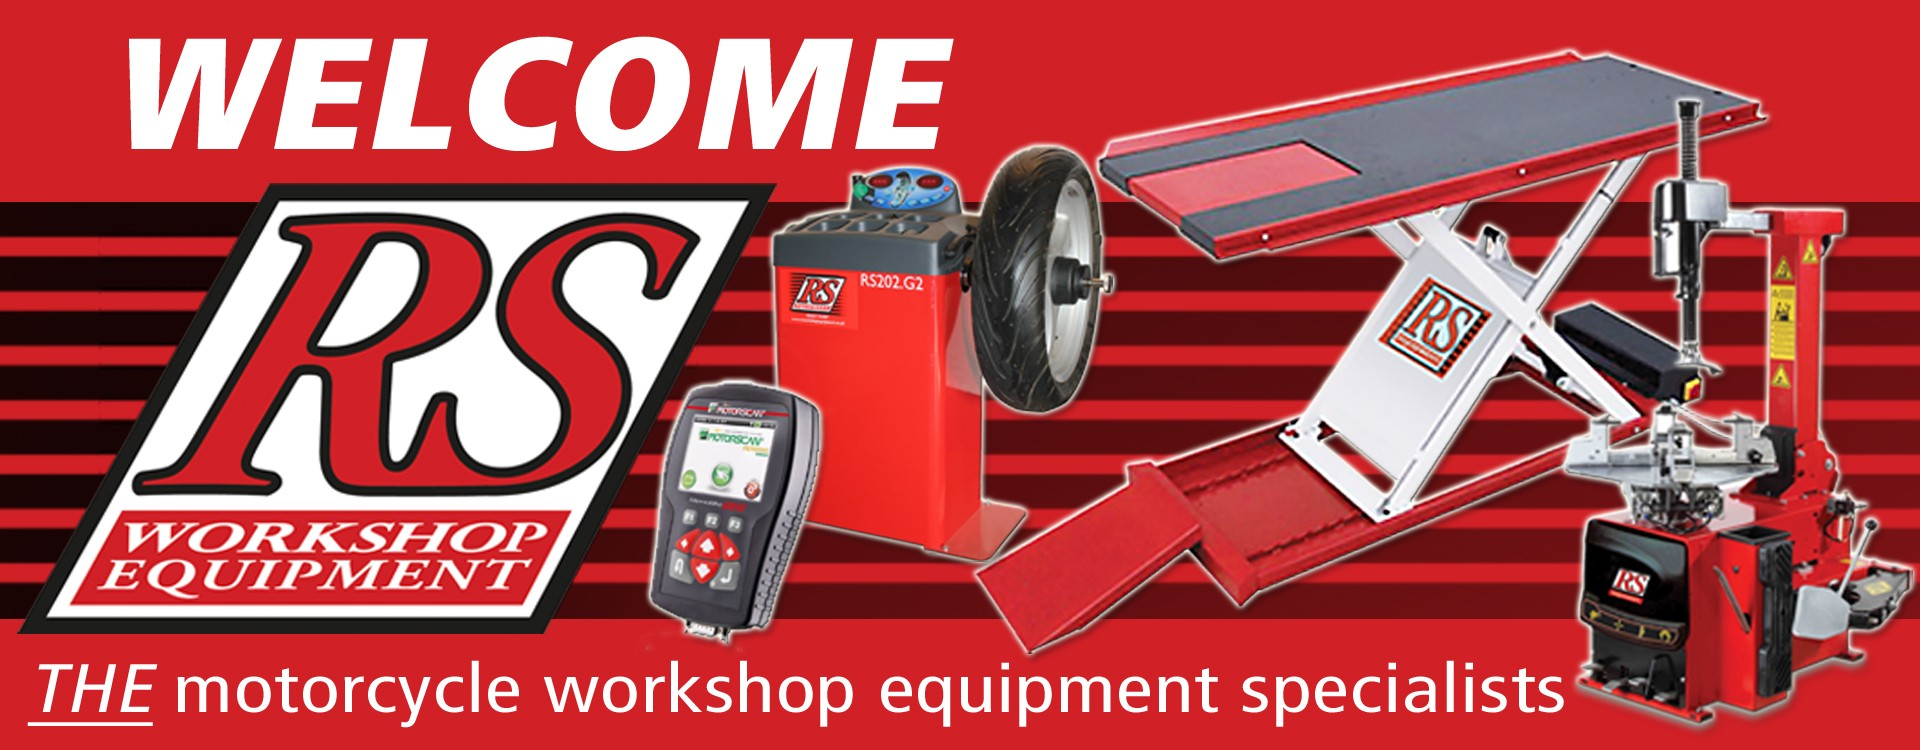 RS Workshop Equipment